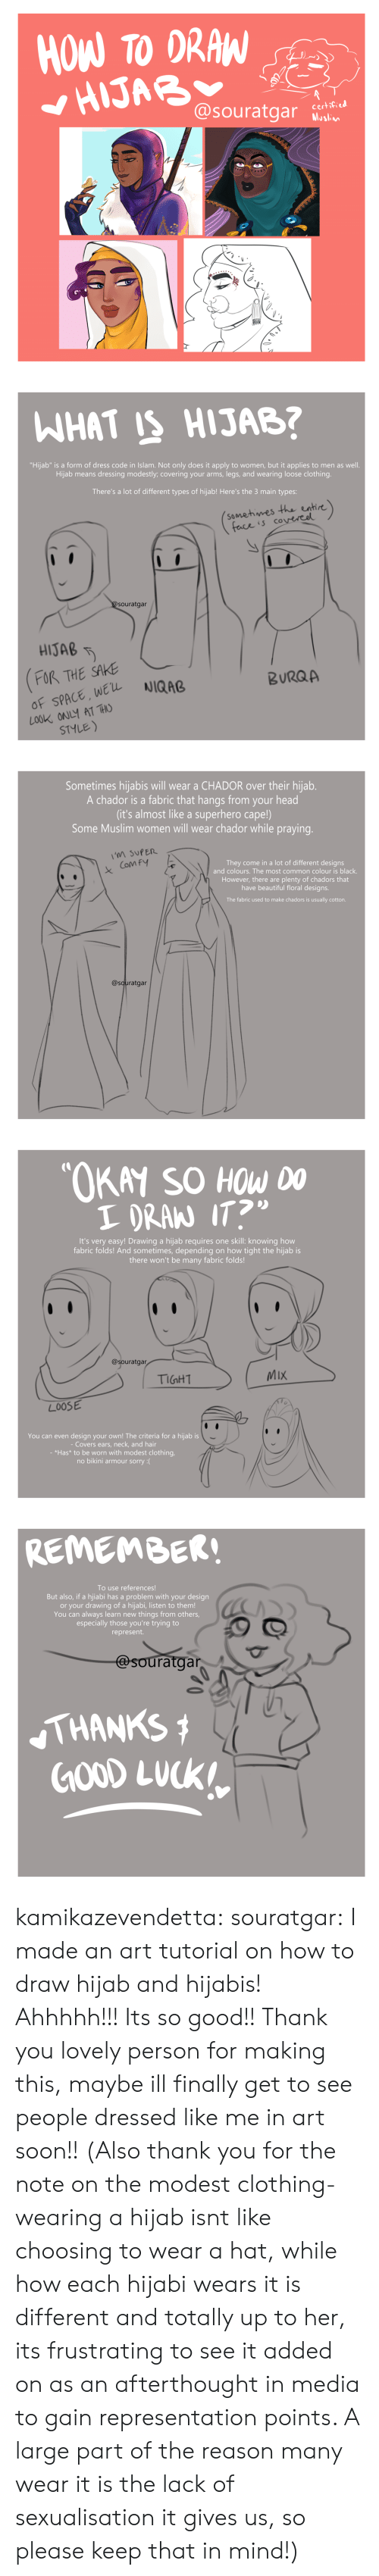 "sake: HOW TO DRAW  HIJAB  @souratgar  certified  Muslim   WHAT IS HIJAB?  ""Hijab"" is a form of dress code in Islam. Not only does it apply to women, but it applies to men as well.  Hijab means dressing modestly; covering your arms, legs, and wearing loose clothing.  There's a lot of different types of hijab! Here's the 3 main types:  (somehimes the entire)  face is covereel  @Souratgar  HIJAB  FOR THE SAKE  OF SPACE, WEL  LOOK ONLY AT THO  STYLE)  NIQAB  BURQA   Sometimes hijabis will wear a CHADOR over their hijab.  A chador is a fabric that hangs from your head  (it's almost like a superhero cape!)  Some Muslim women will wear chador while praying.  M SUPER  They come in a lot of different designs  and colours. The most common colour is black.  Com FY  However, there are plenty of chadors that  have beautiful floral designs.  The fabric used to make chadors is usually cotton.  @souratgar   ""OKAY SO HOW DO  I DRAN IT?  It's very easy! Drawing a hijab requi res one skill: knowing how  fabric folds! And sometimes, depending on how tight the hijab is  there won't be many fabric folds!  @souratgar  MIX  TIGHT  LOOSE  You can even design your own! The criteria for a hijab is  - Covers ears, neck, and hair  - *Has* to be worn with modest clothing,  no bikini armour sorry :(   REMEMBER!  To use references!  But also, if a hijiabi has a problem with your design  or your drawing of a hijabi, listen to them!  You can always learn new things from others,  especially those you're trying to  represent.  @souratgar  THANKS  GOOD LUCK kamikazevendetta:  souratgar: I made an art tutorial on how to draw hijab and hijabis! Ahhhhh!!! Its so good!! Thank you lovely person for making this, maybe ill finally get to see people dressed like me in art soon!!   (Also thank you for the note on the modest clothing- wearing a hijab isnt like choosing to wear a hat, while how each hijabi wears it is different and totally up to her, its frustrating to see it added on as an afterthought in media to gain representation points. A large part of the reason many wear it is the lack of sexualisation it gives us, so please keep that in mind!)"